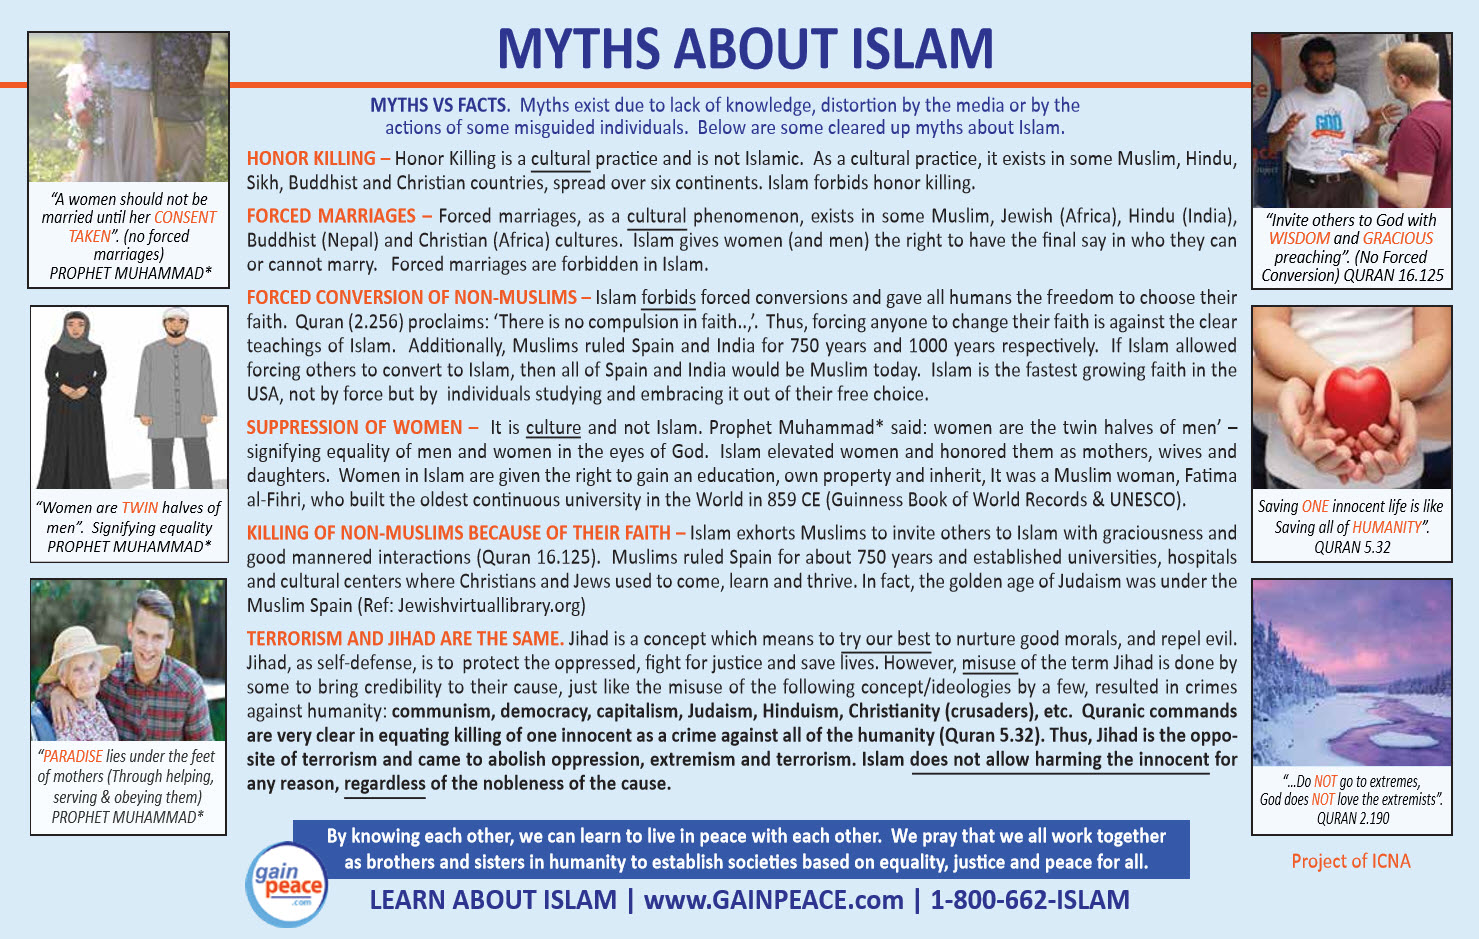 mailing-card-myth-about-islam-front.jpg